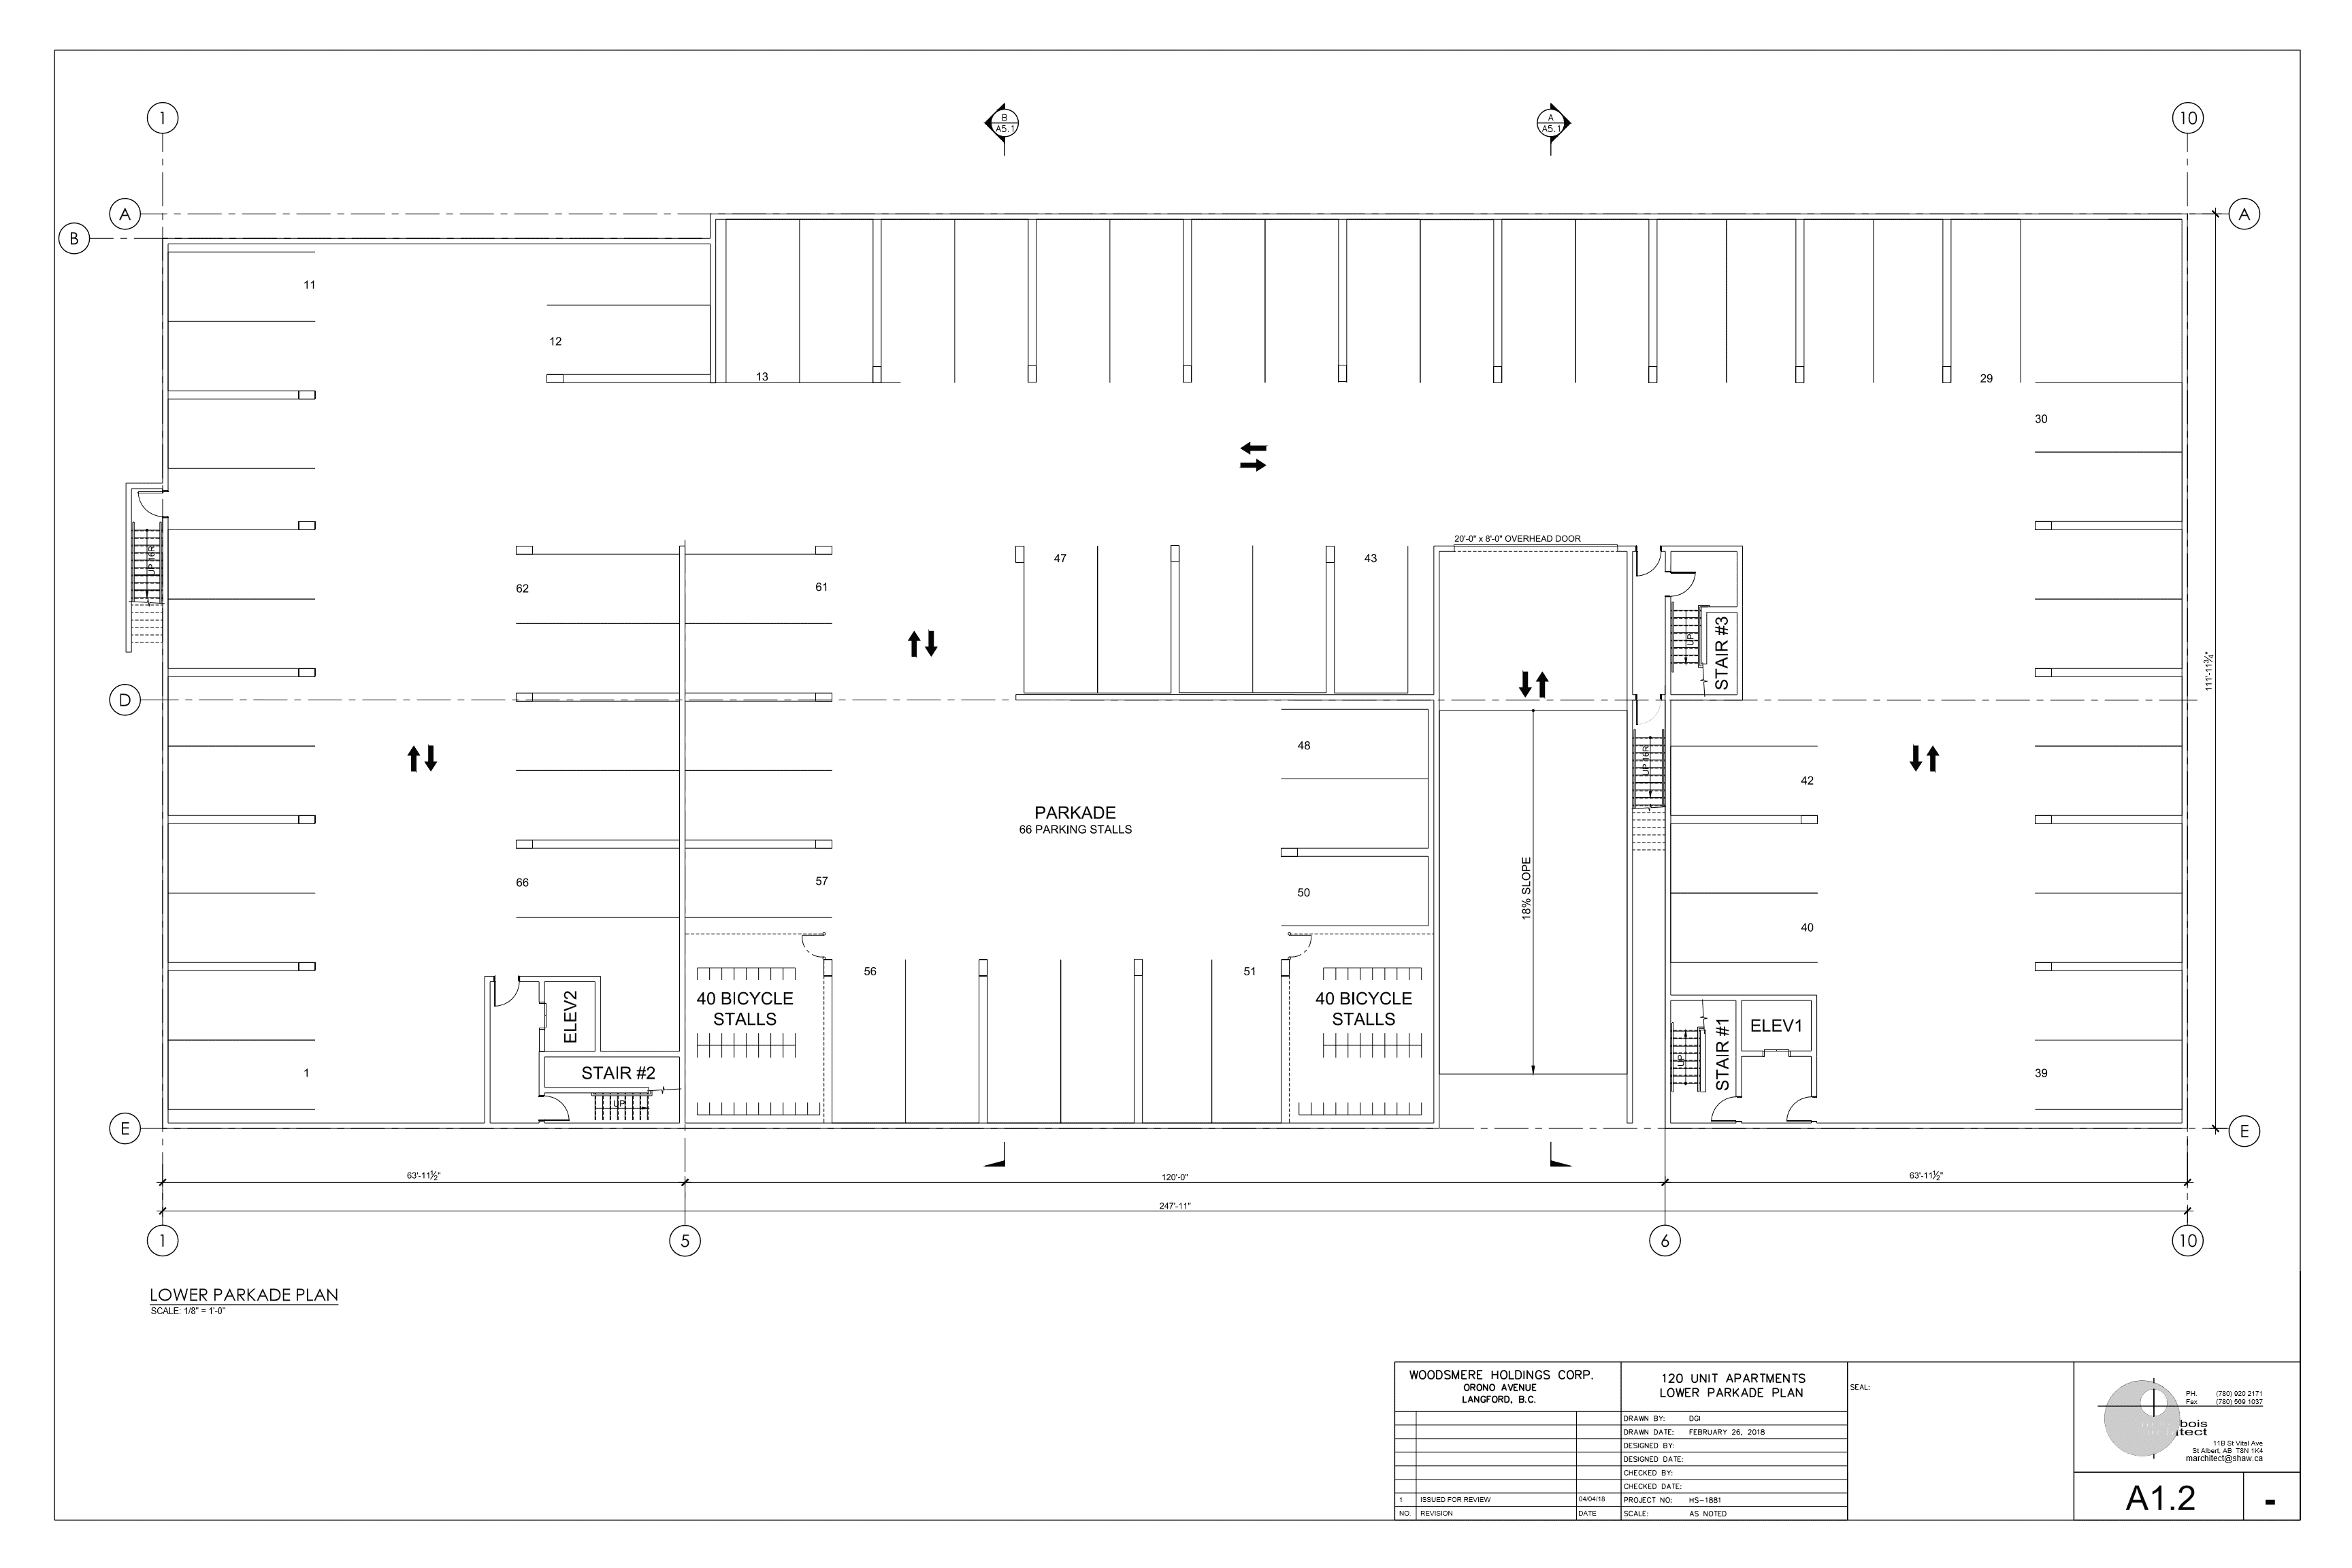 (17-81) HSI-ORONO- A1.2 LOWER PARKADE PLAN - APR4